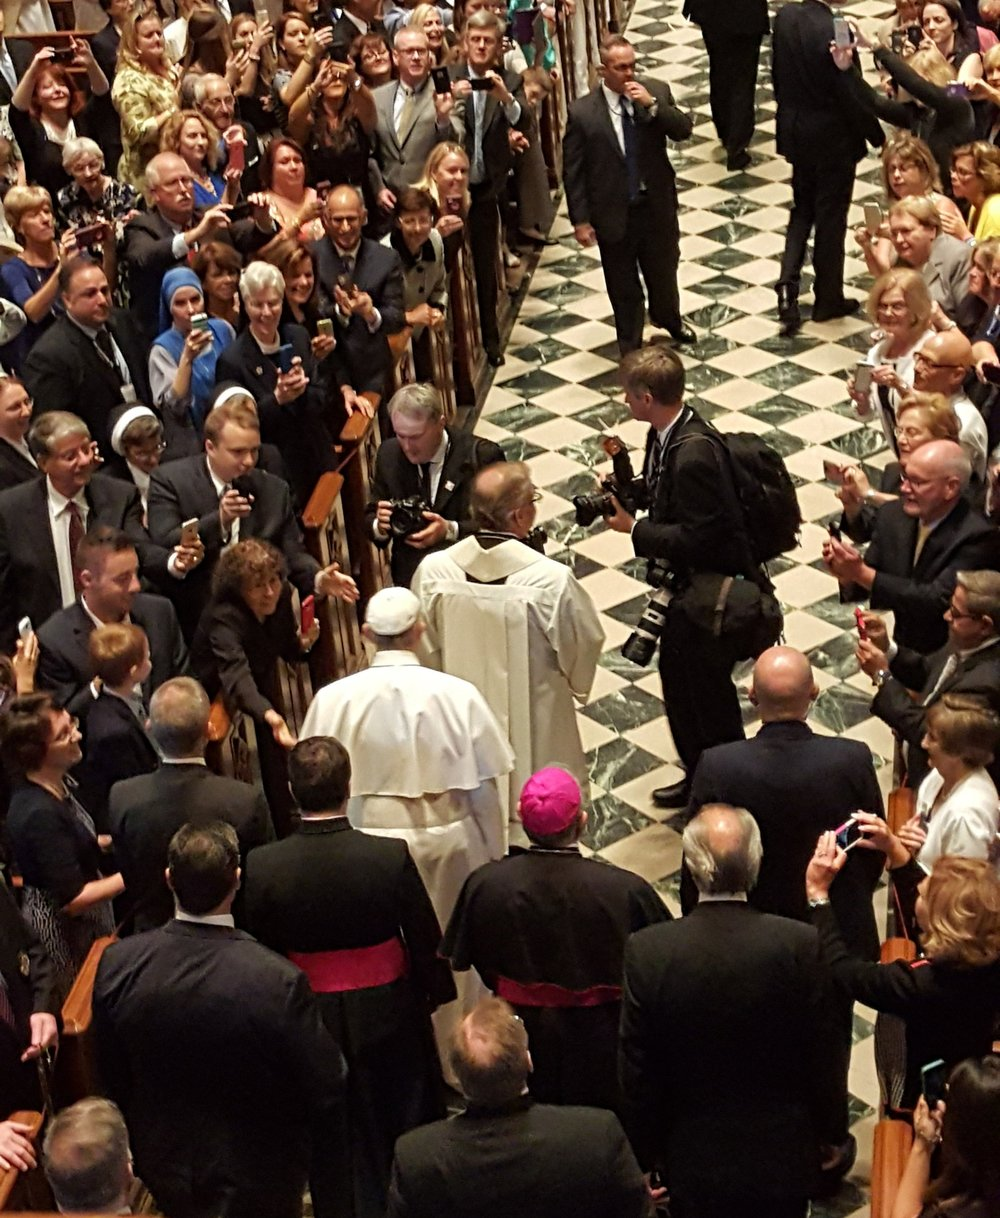 Pope Francis, lead by the Cathedral Rector Fr. Dennis Gill, enters the Cathedral to say mass.